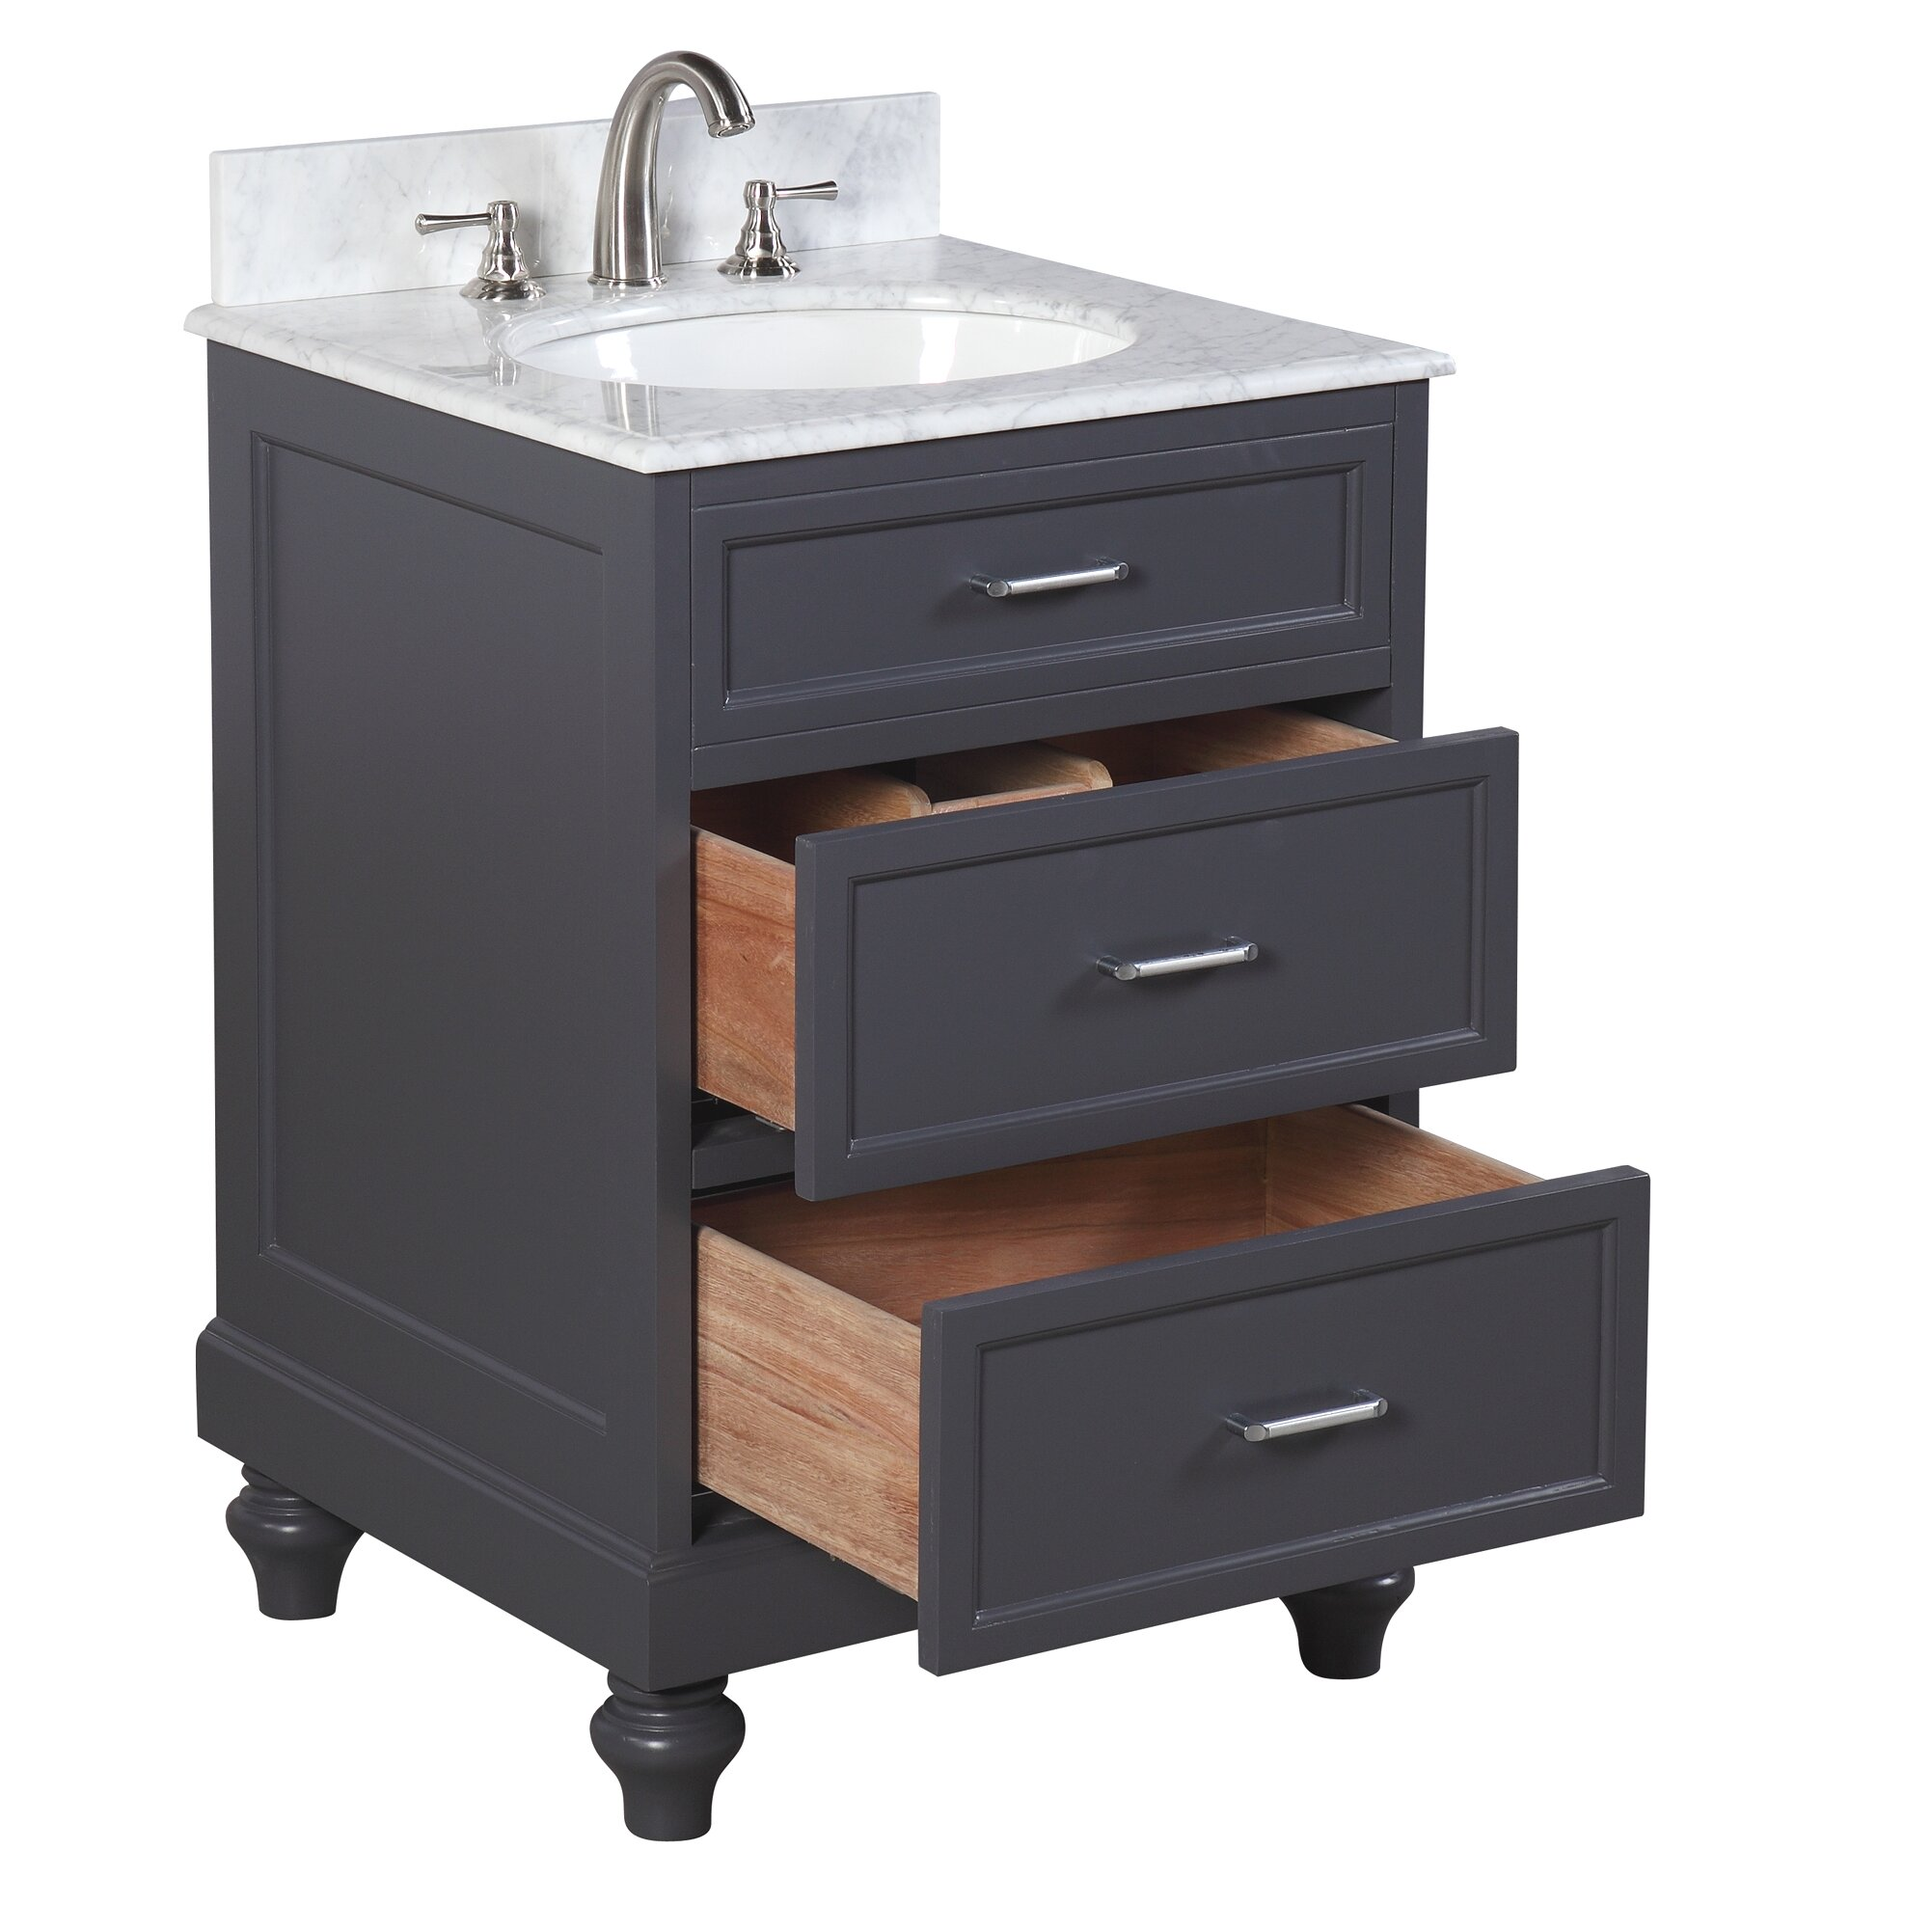 Kbc Amelia 24 Single Bathroom Vanity Set Reviews Wayfair